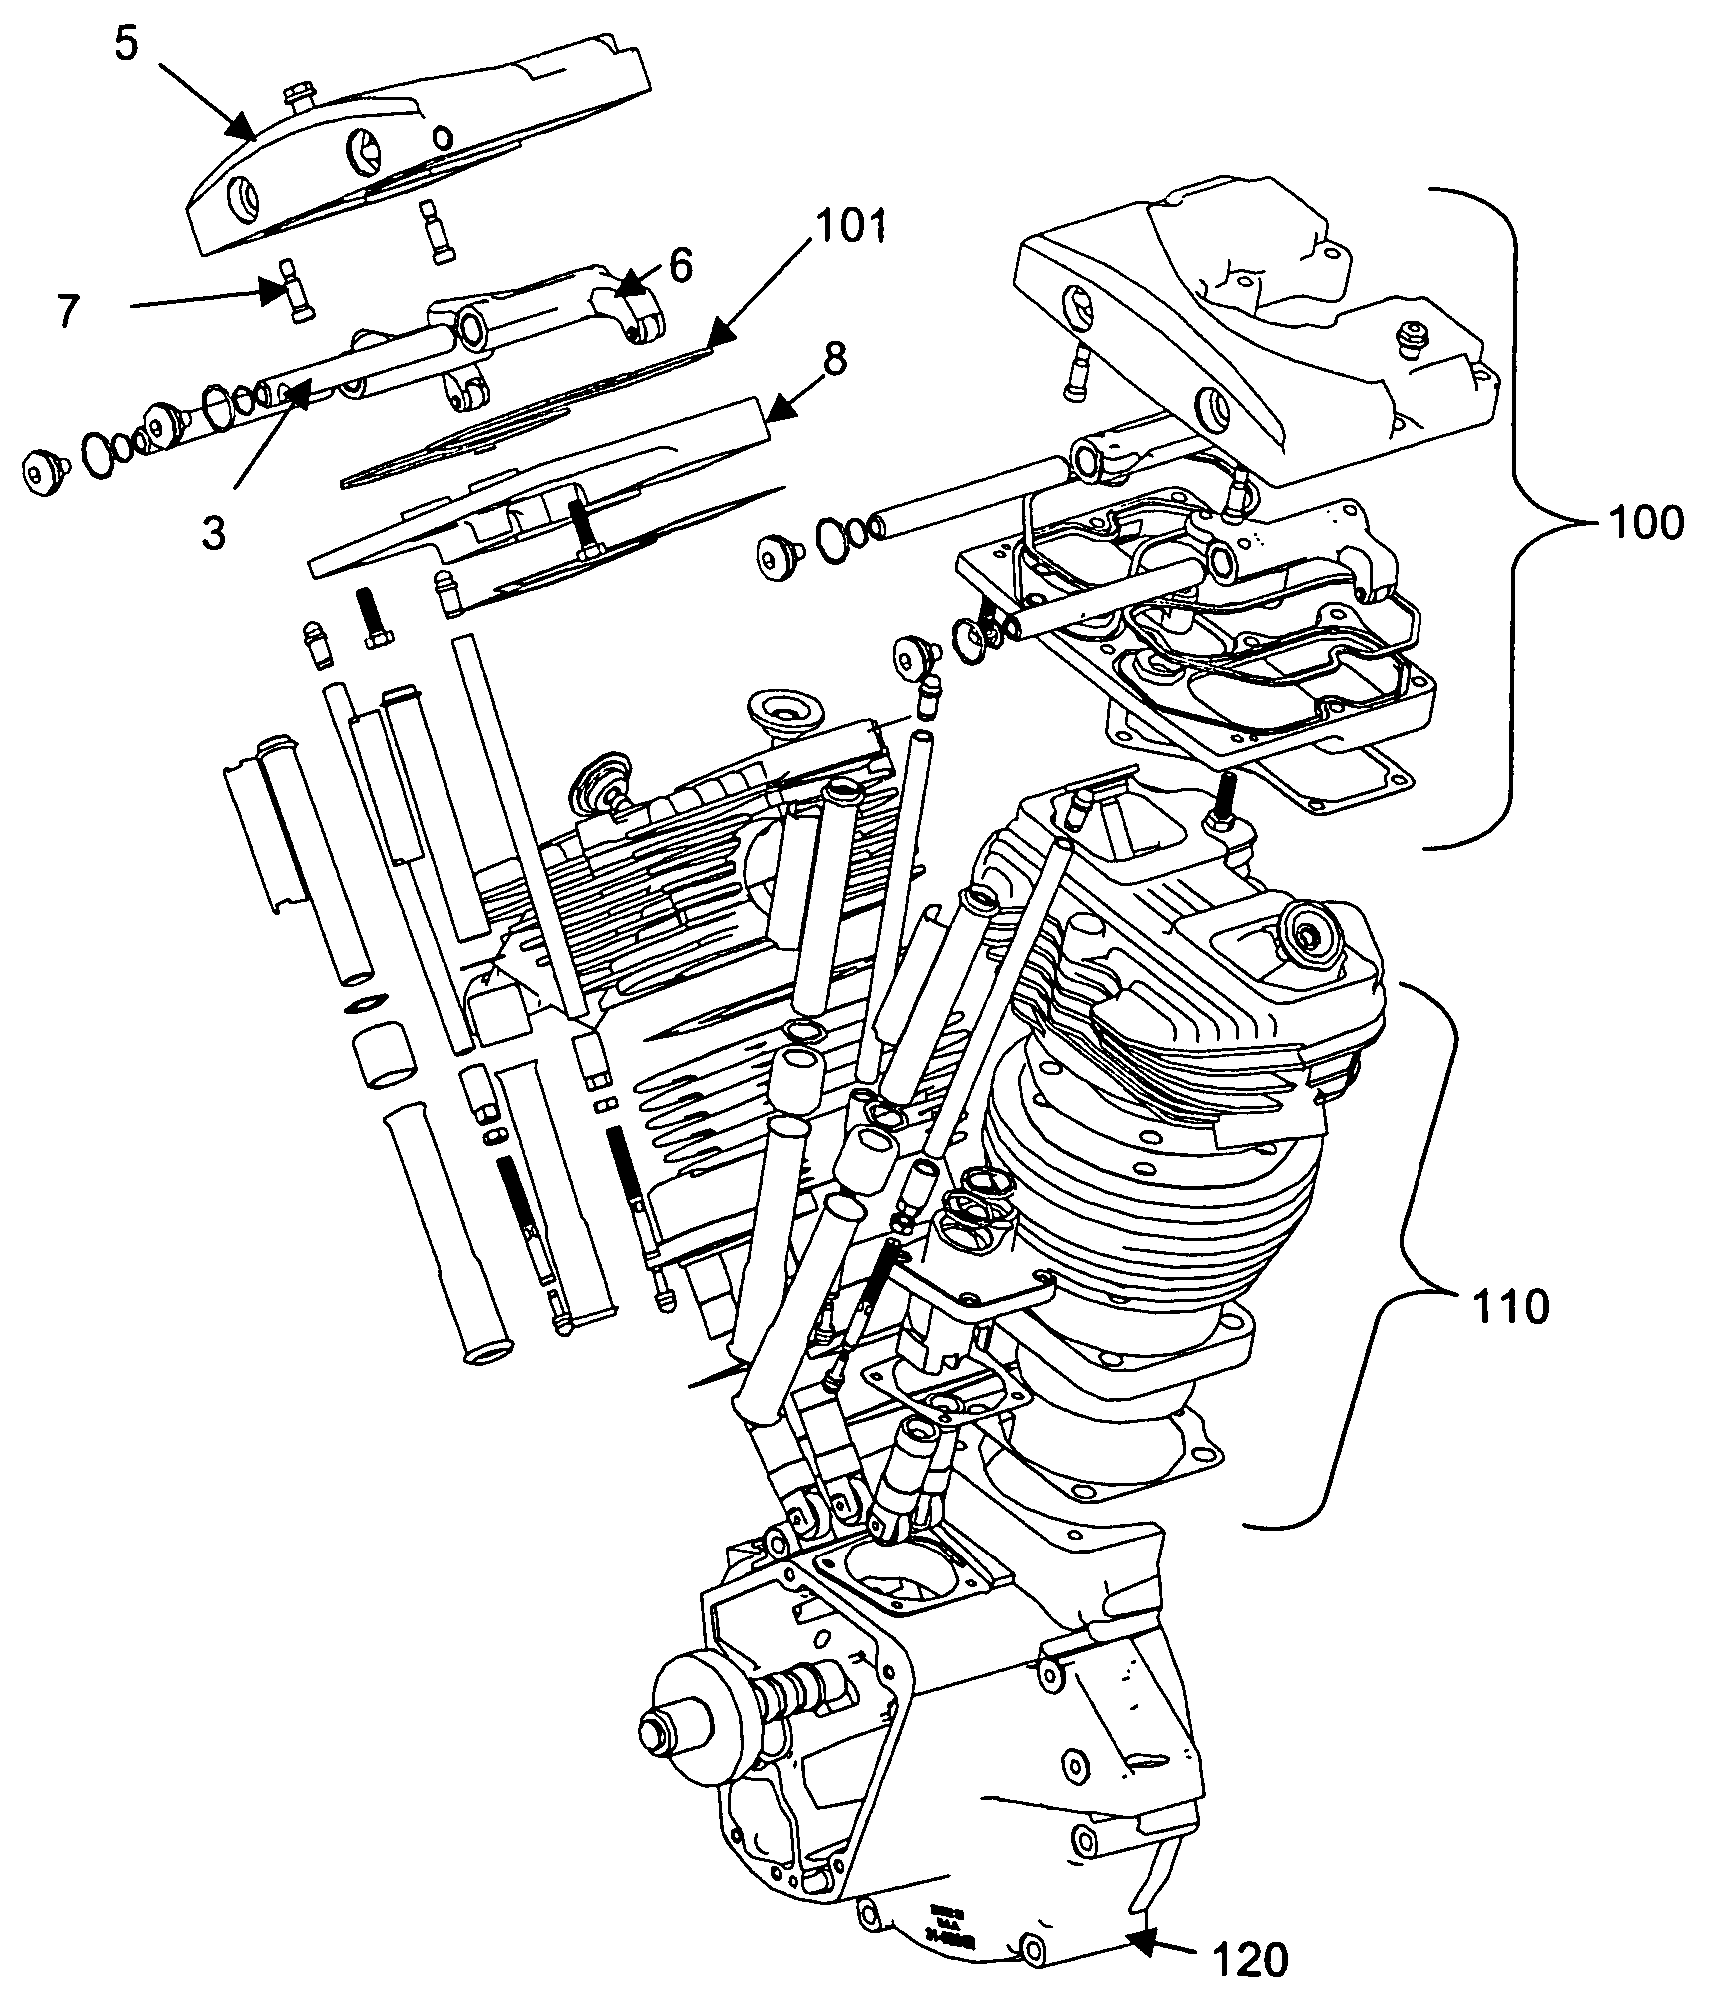 Manuals diagrams likewise 1985 Fxwg Wiring Diagram further 1979 Sportster Wiring Diagram in addition Sporty Wiring How To also US7581525. on evo chopper wiring diagram